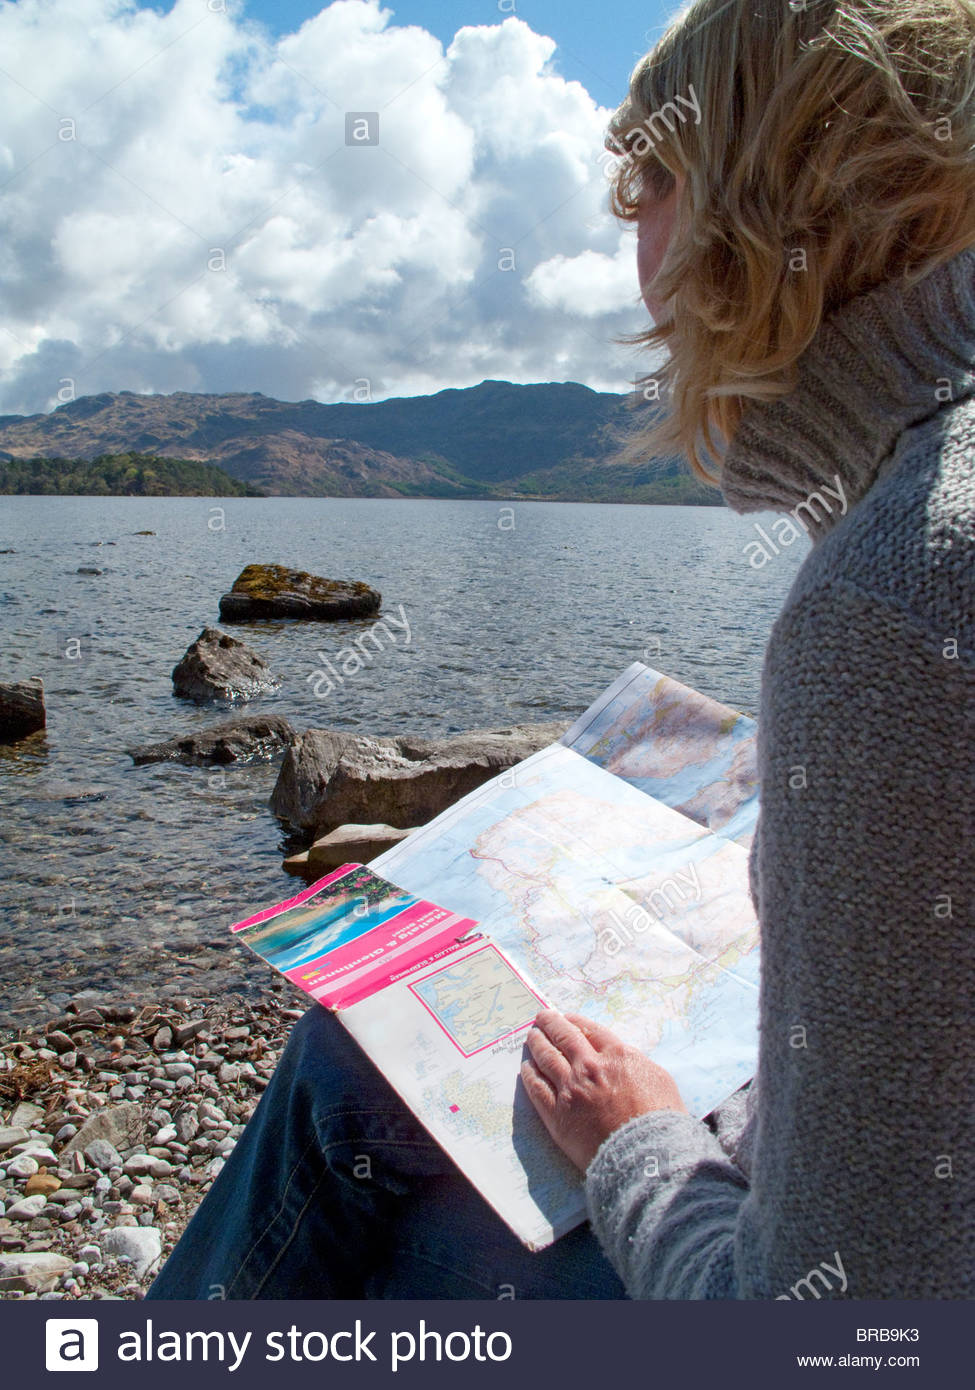 Woman looking at map and sitting rocky shore of lake - Stock Image